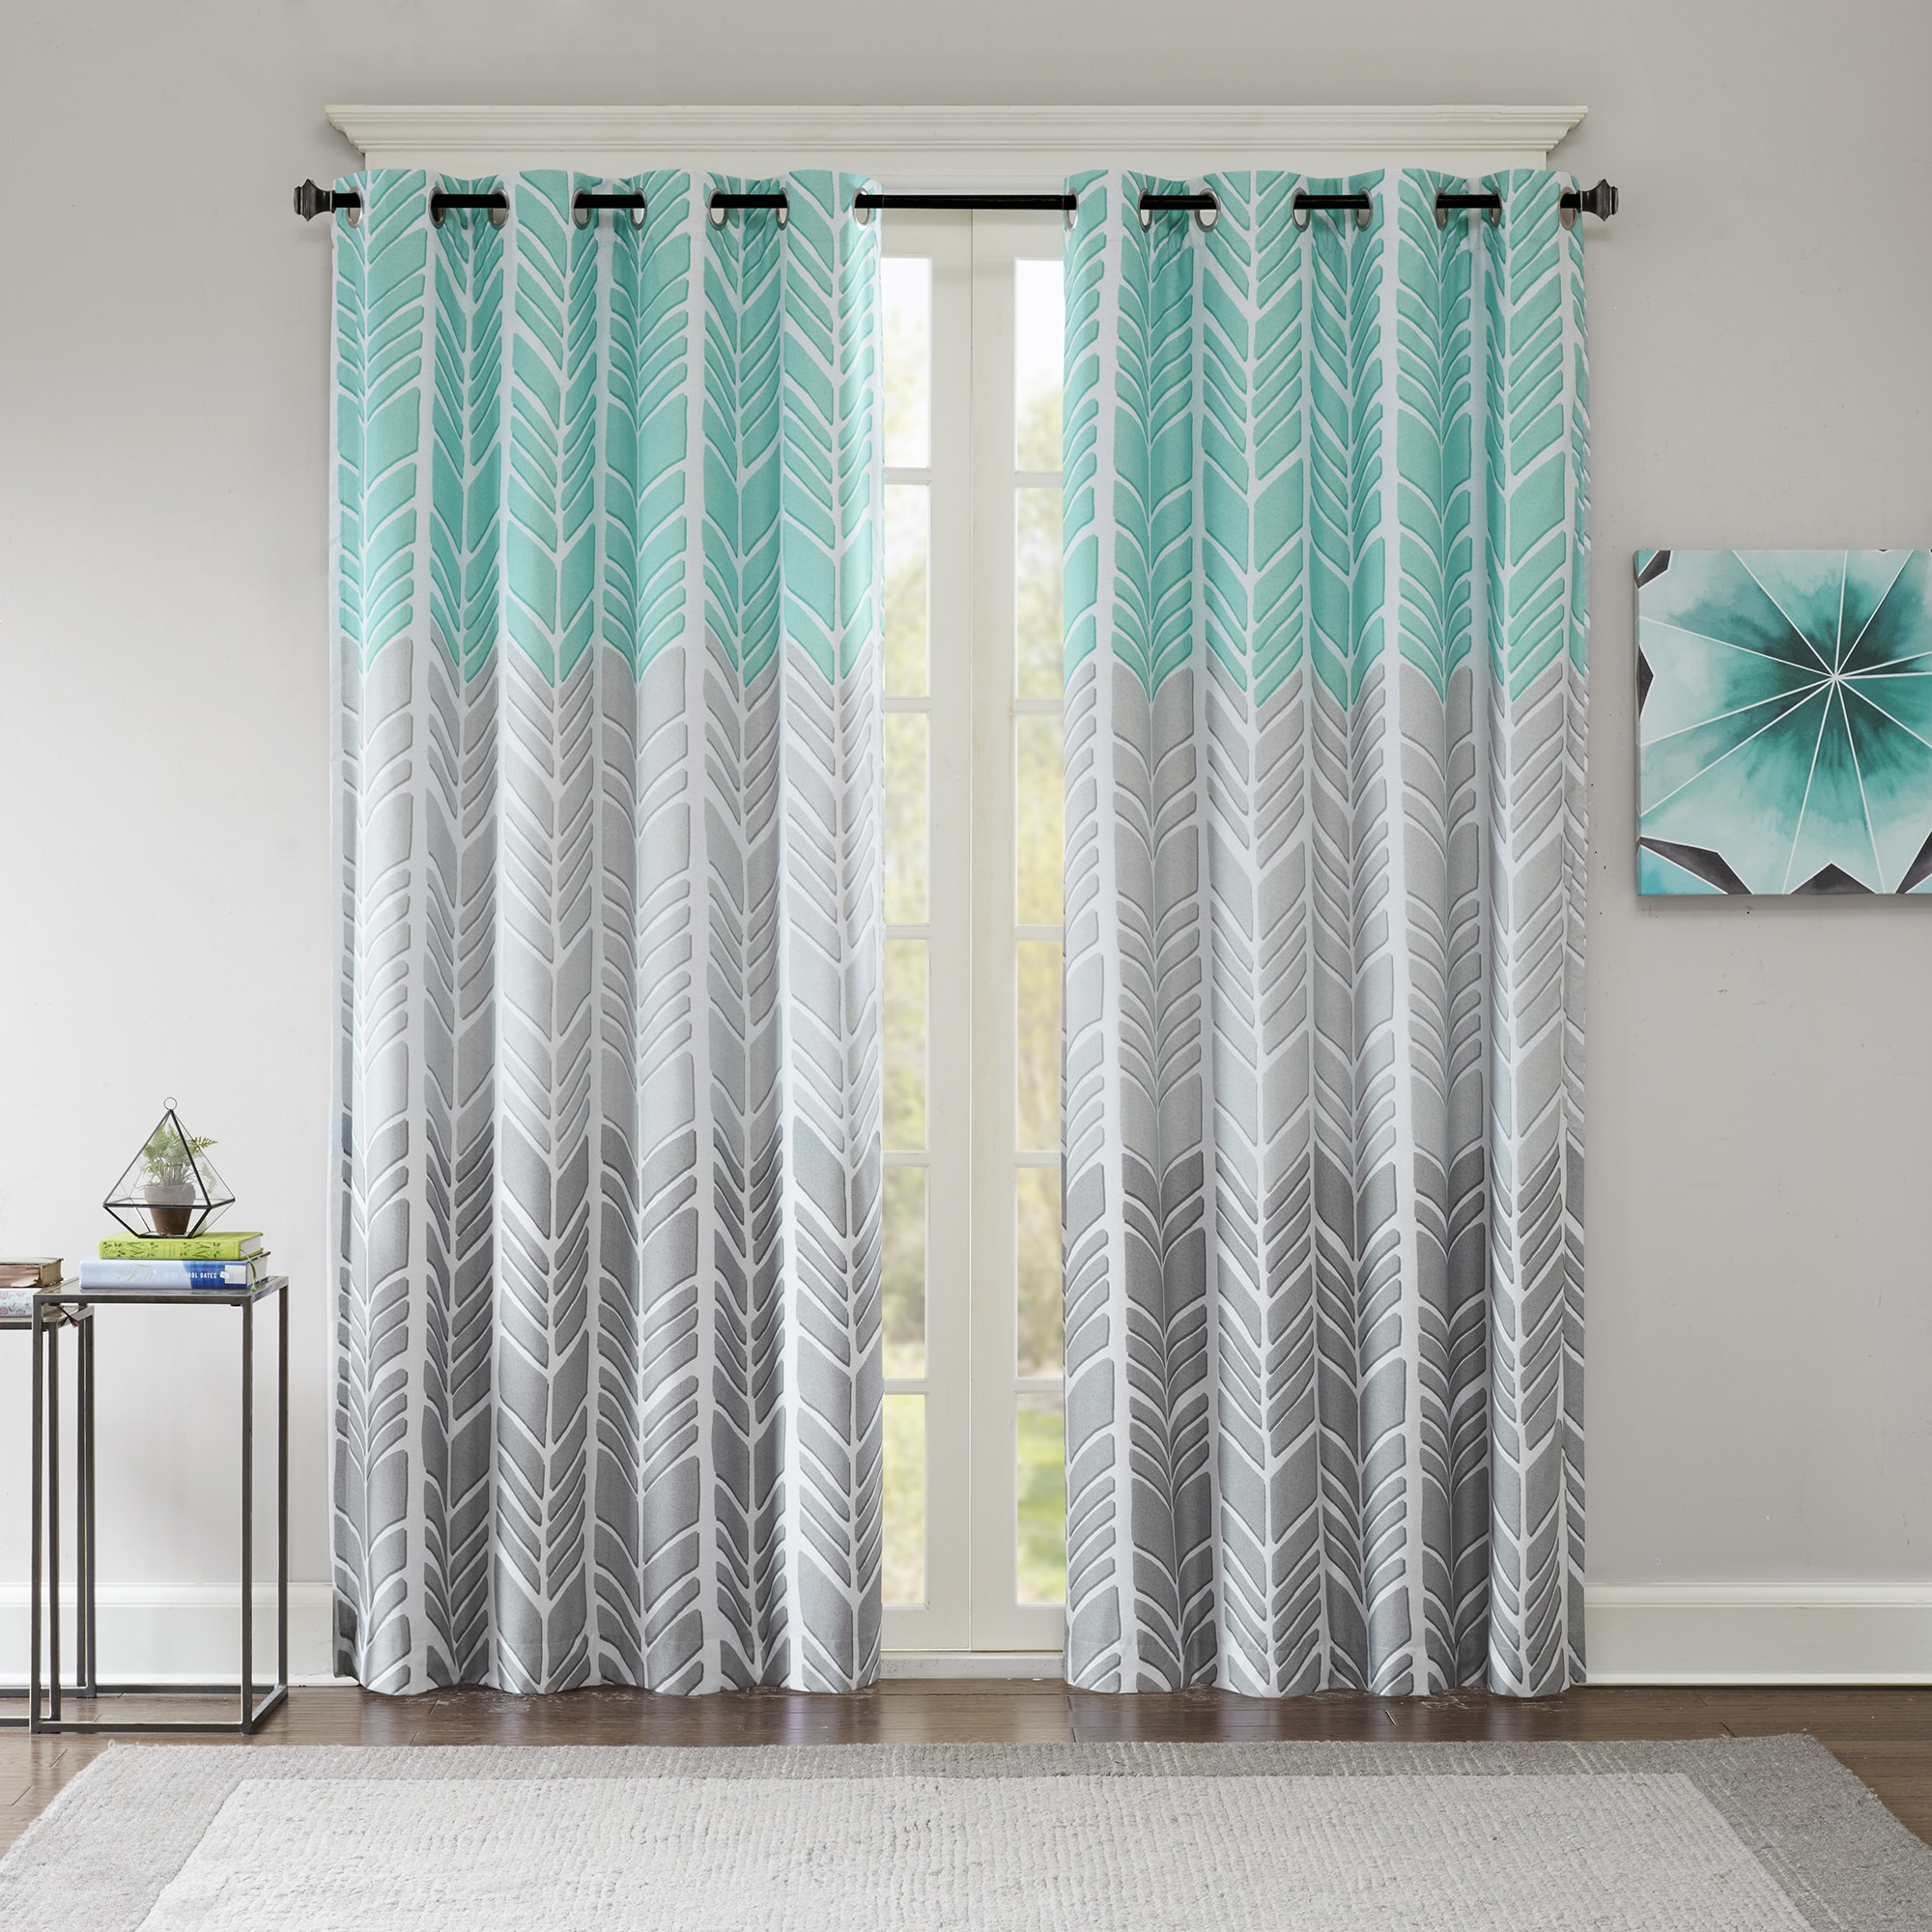 Shop Intelligent Design Kennedy Printed Lined Blackout Window Curtain